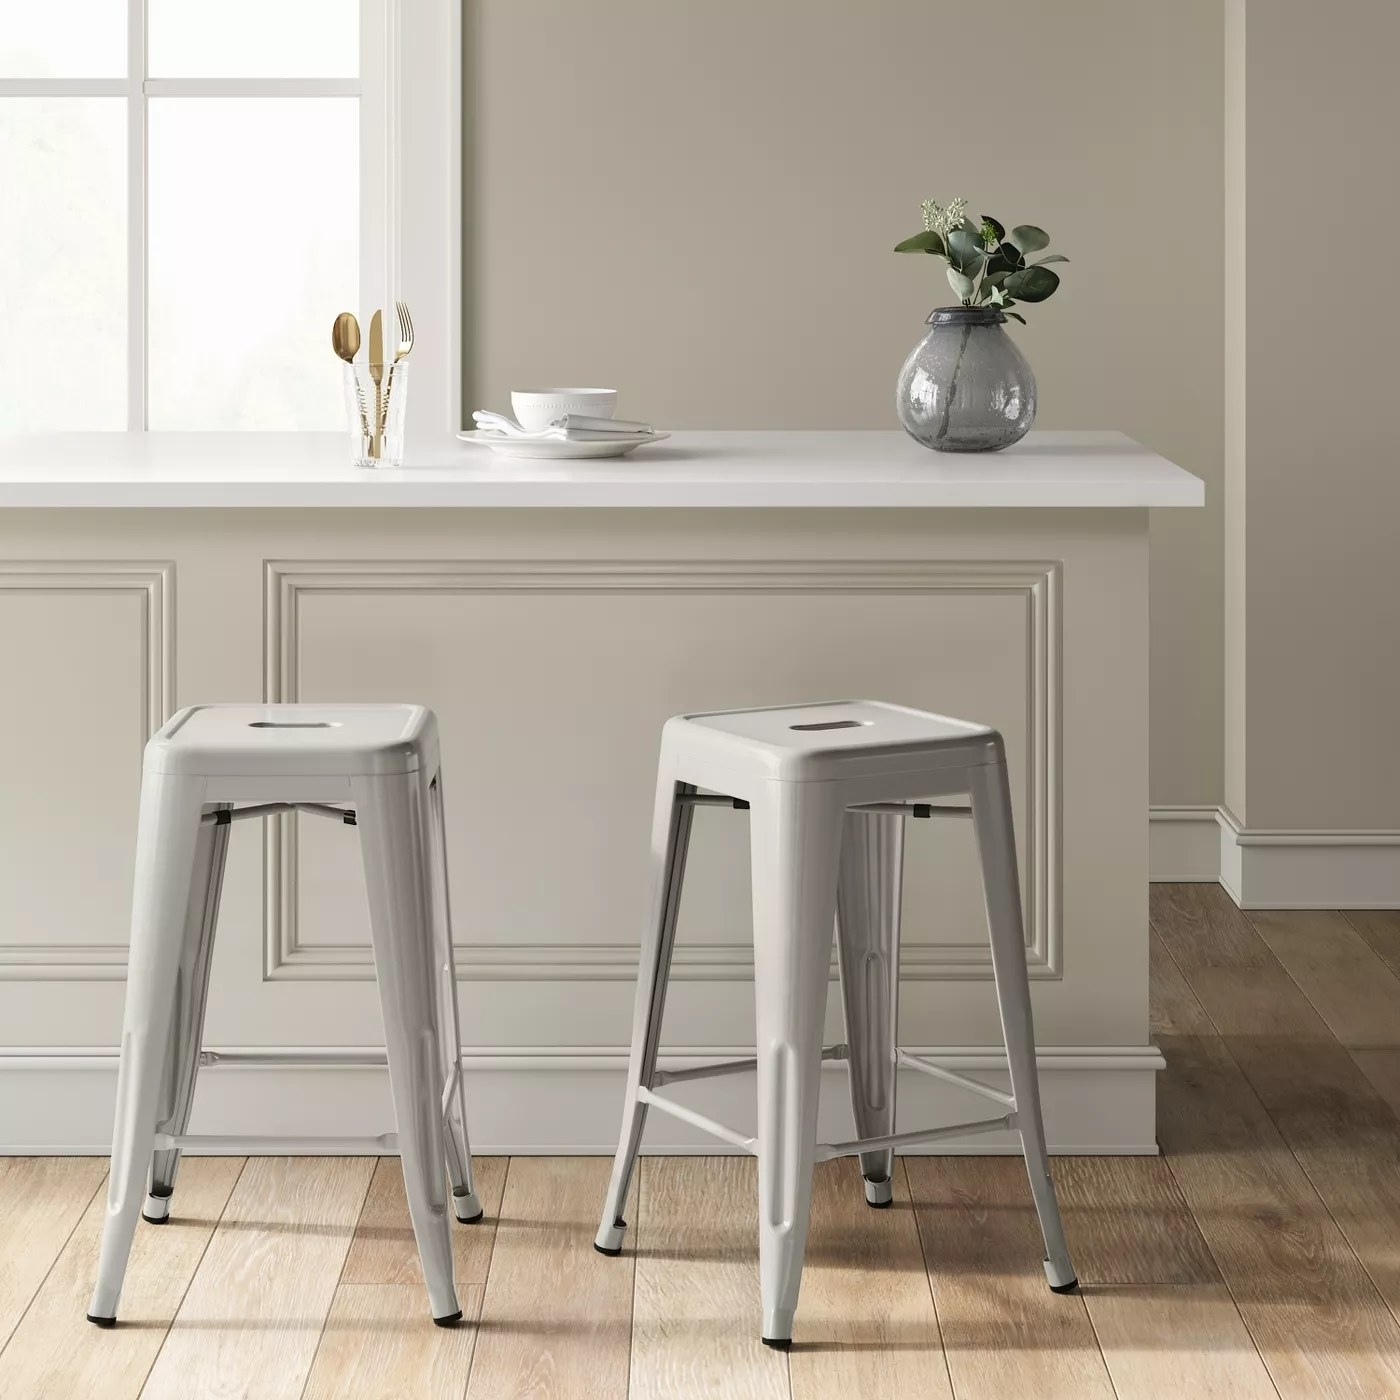 The gray bar stools underneath a kitchen counter